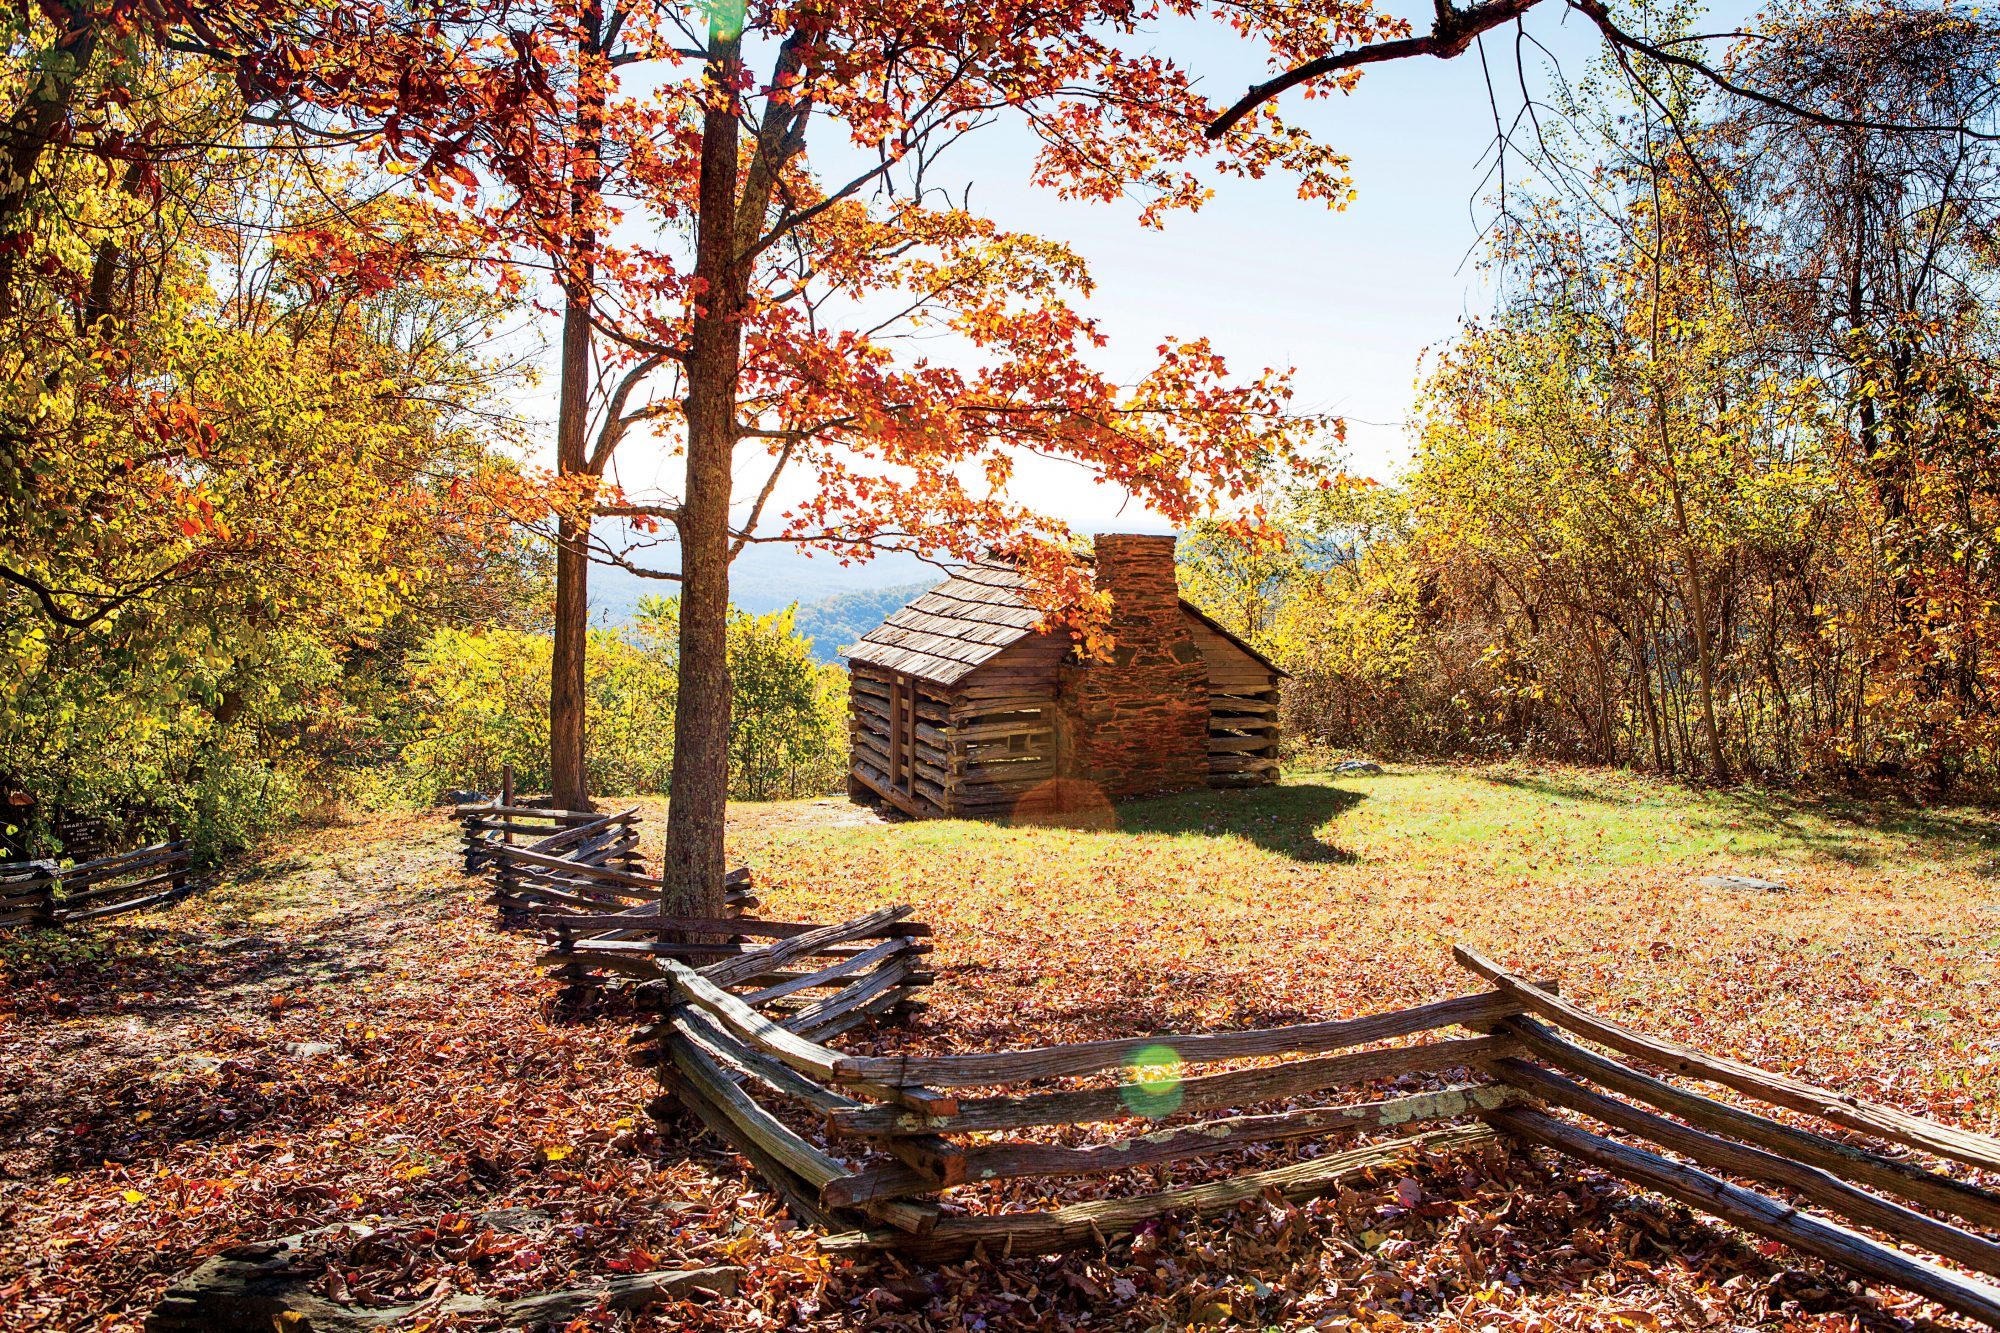 T.T. Trail cabin at Smart View Overlook